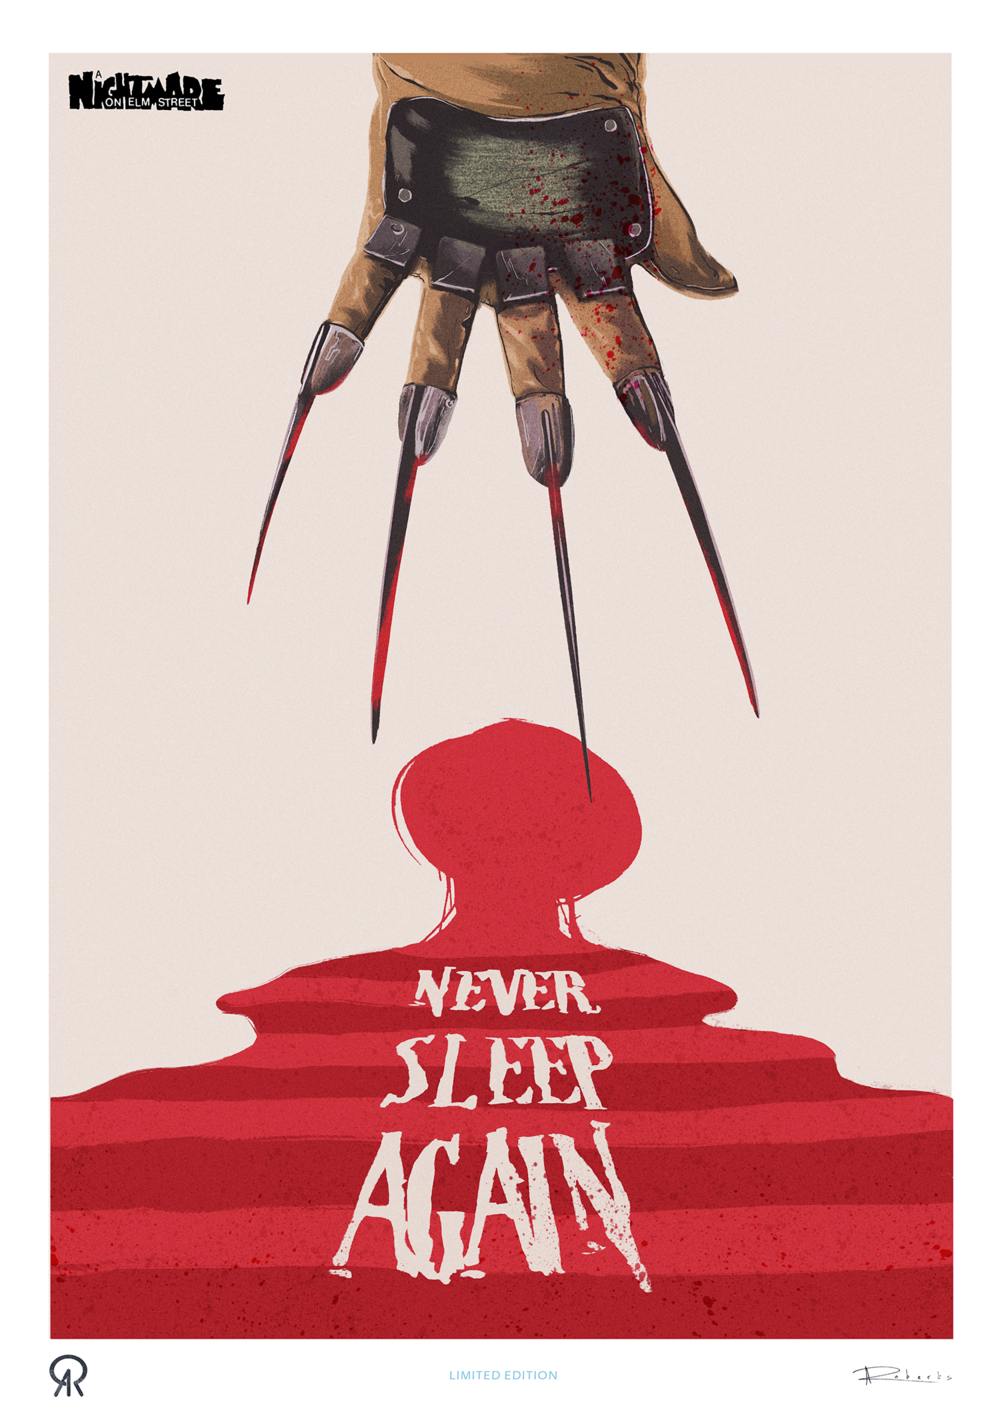 Nightmare on Elm Street - LIMITED EDITION PRINT